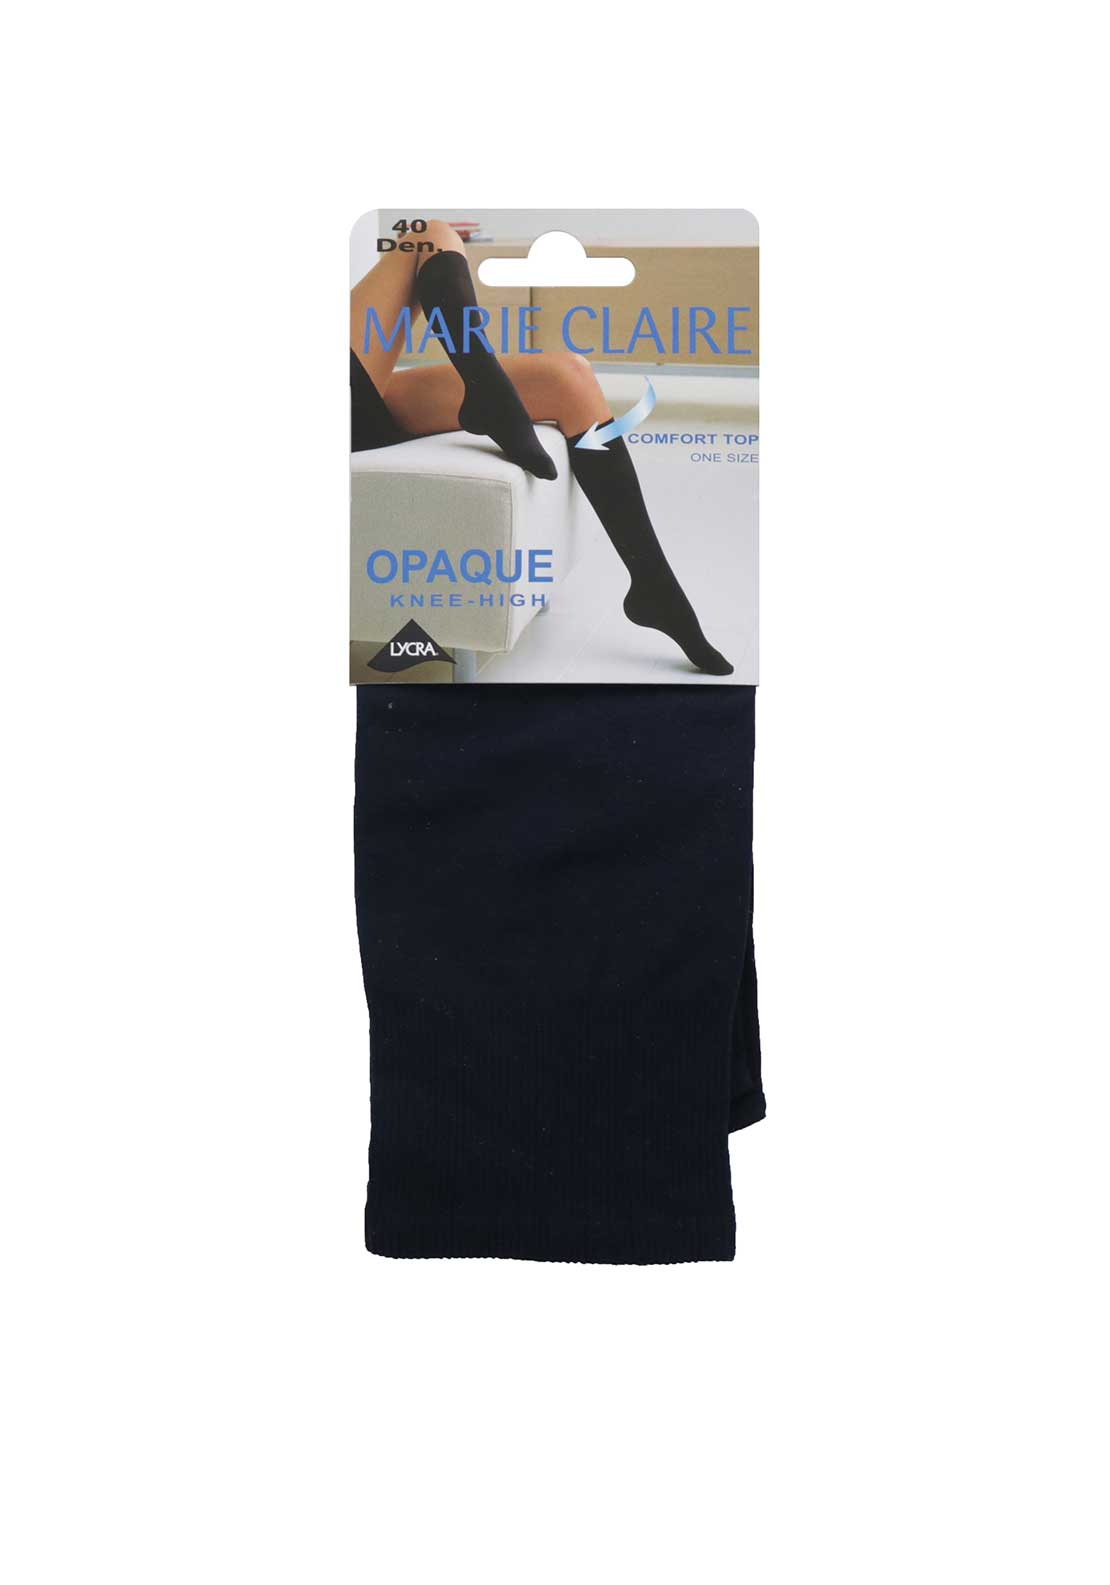 Marie Claire 40 Denier Knee High Tights, Navy